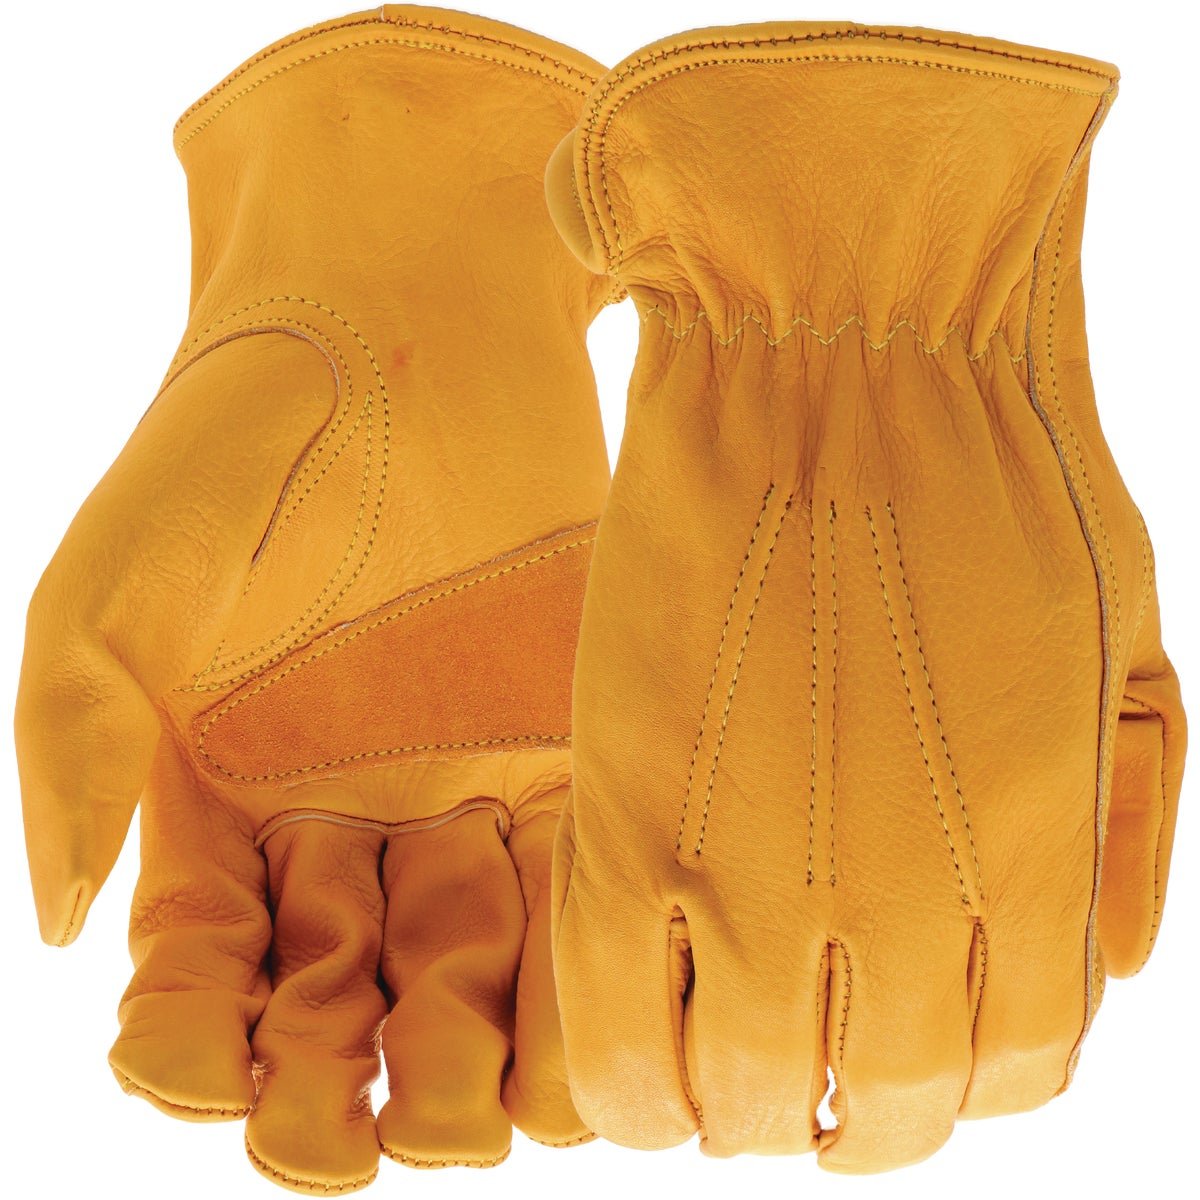 SML GRAIN LEATHER GLOVE - 1130S by Wells Lamont